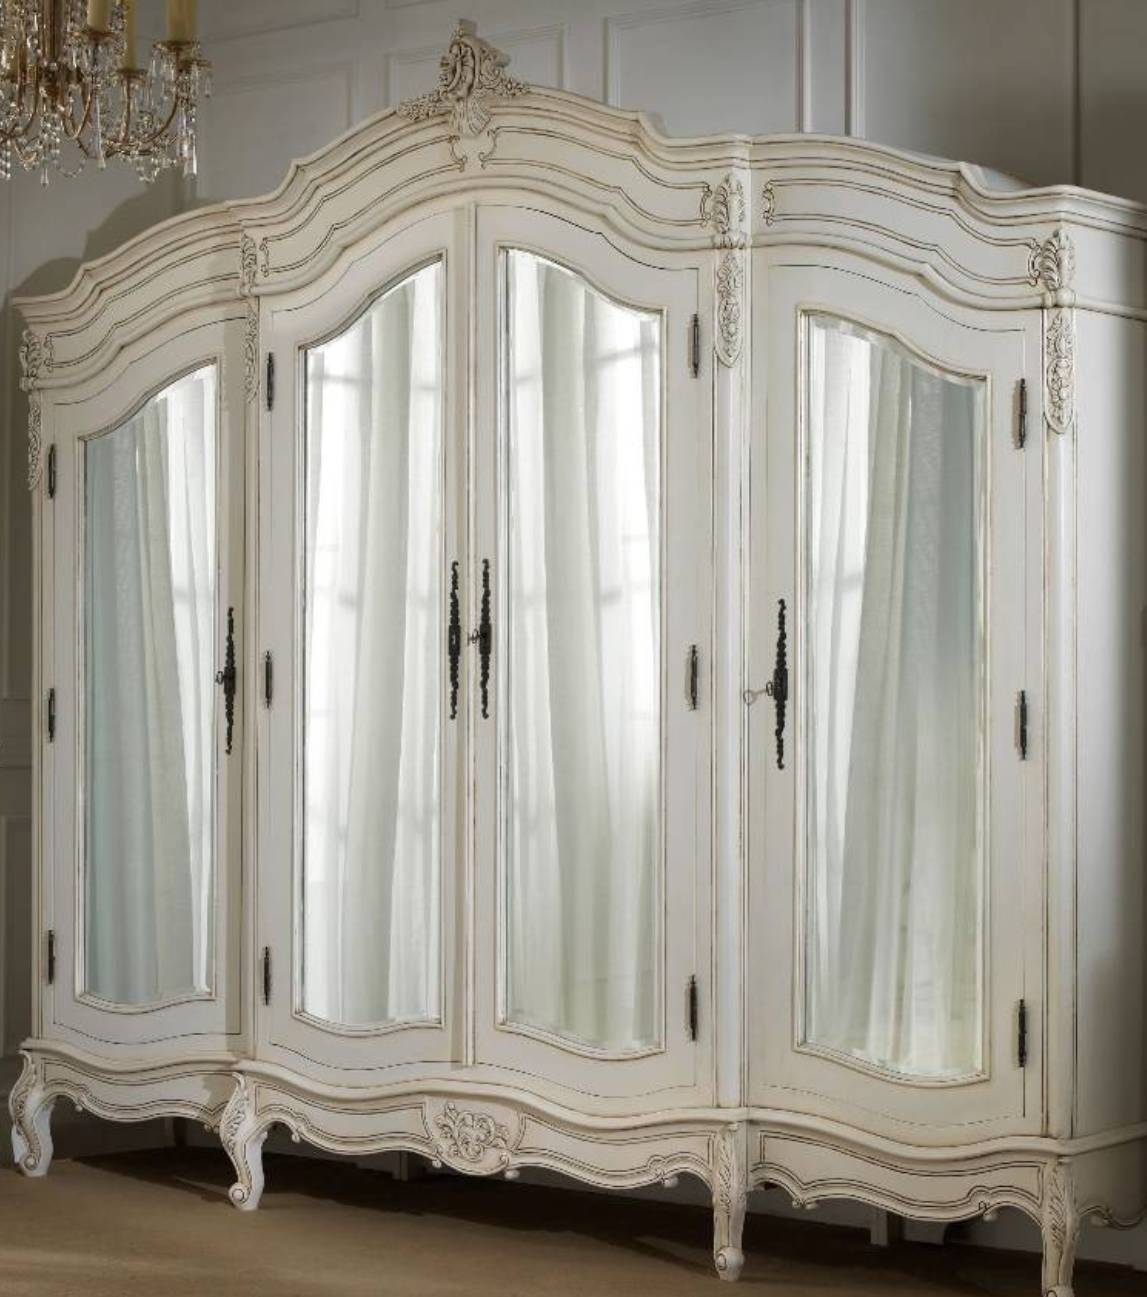 White French Armoire Wardrobe With Mirror : Beautiful French in French Armoires Wardrobes (Image 15 of 15)